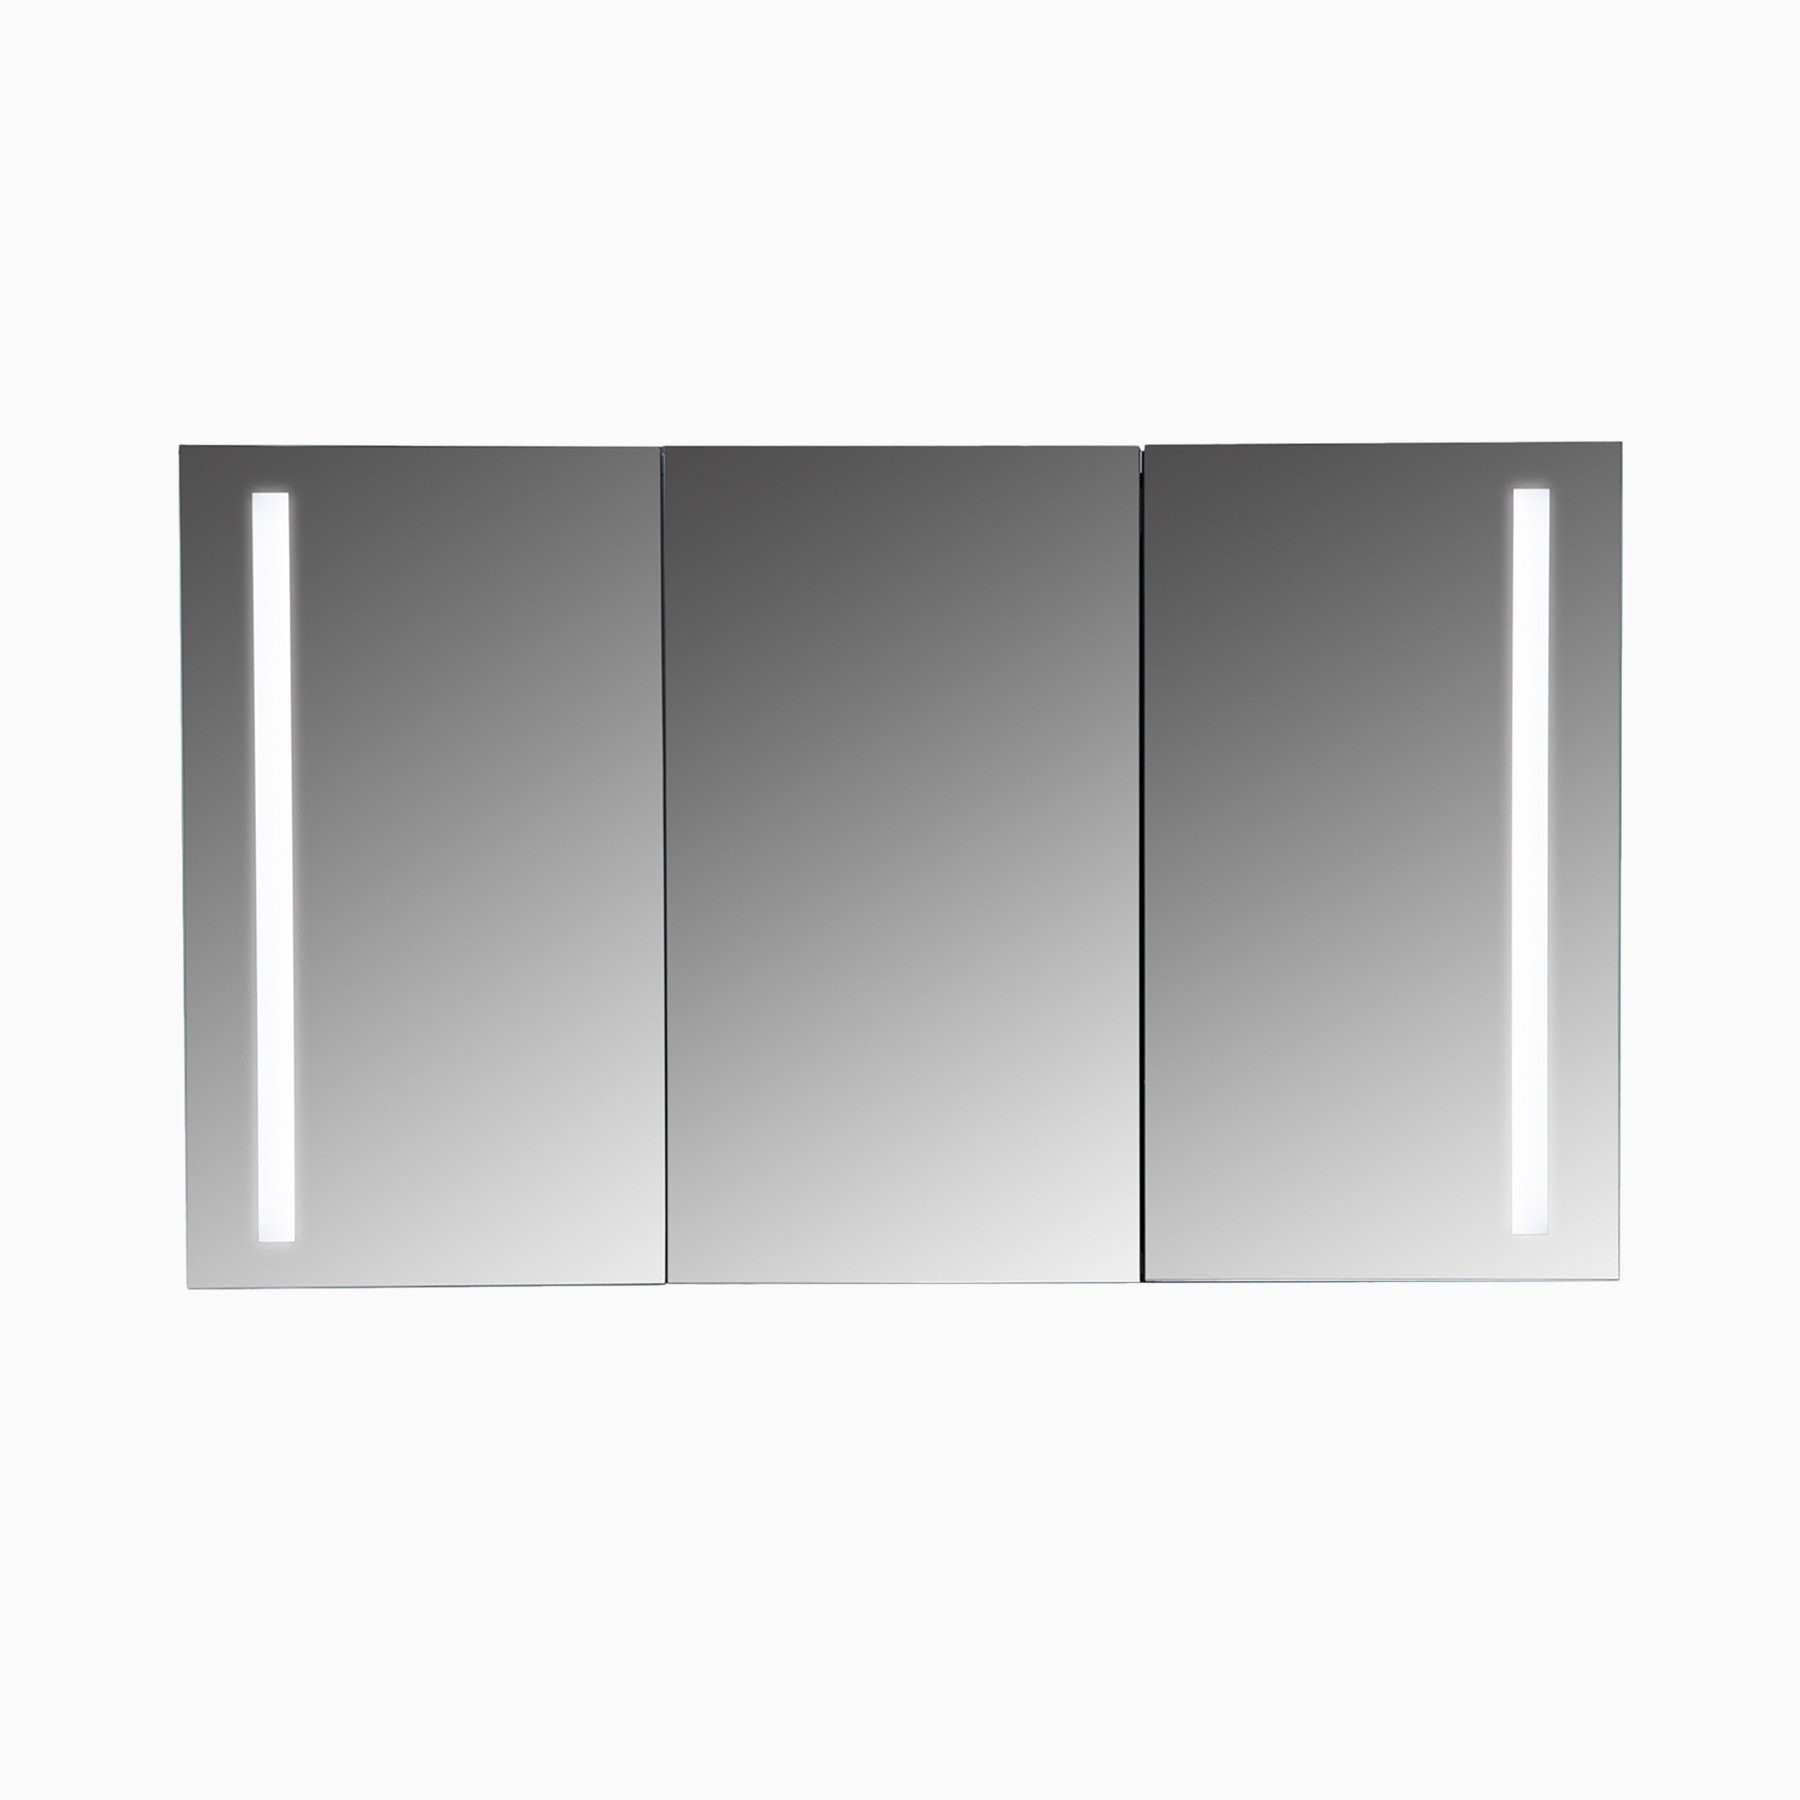 Emery 48 Inch W X 28 Inch H Rectangular Led Mirrored Medicine Cabinet With 3 Doors Modern Frameless Wall Led Mirror